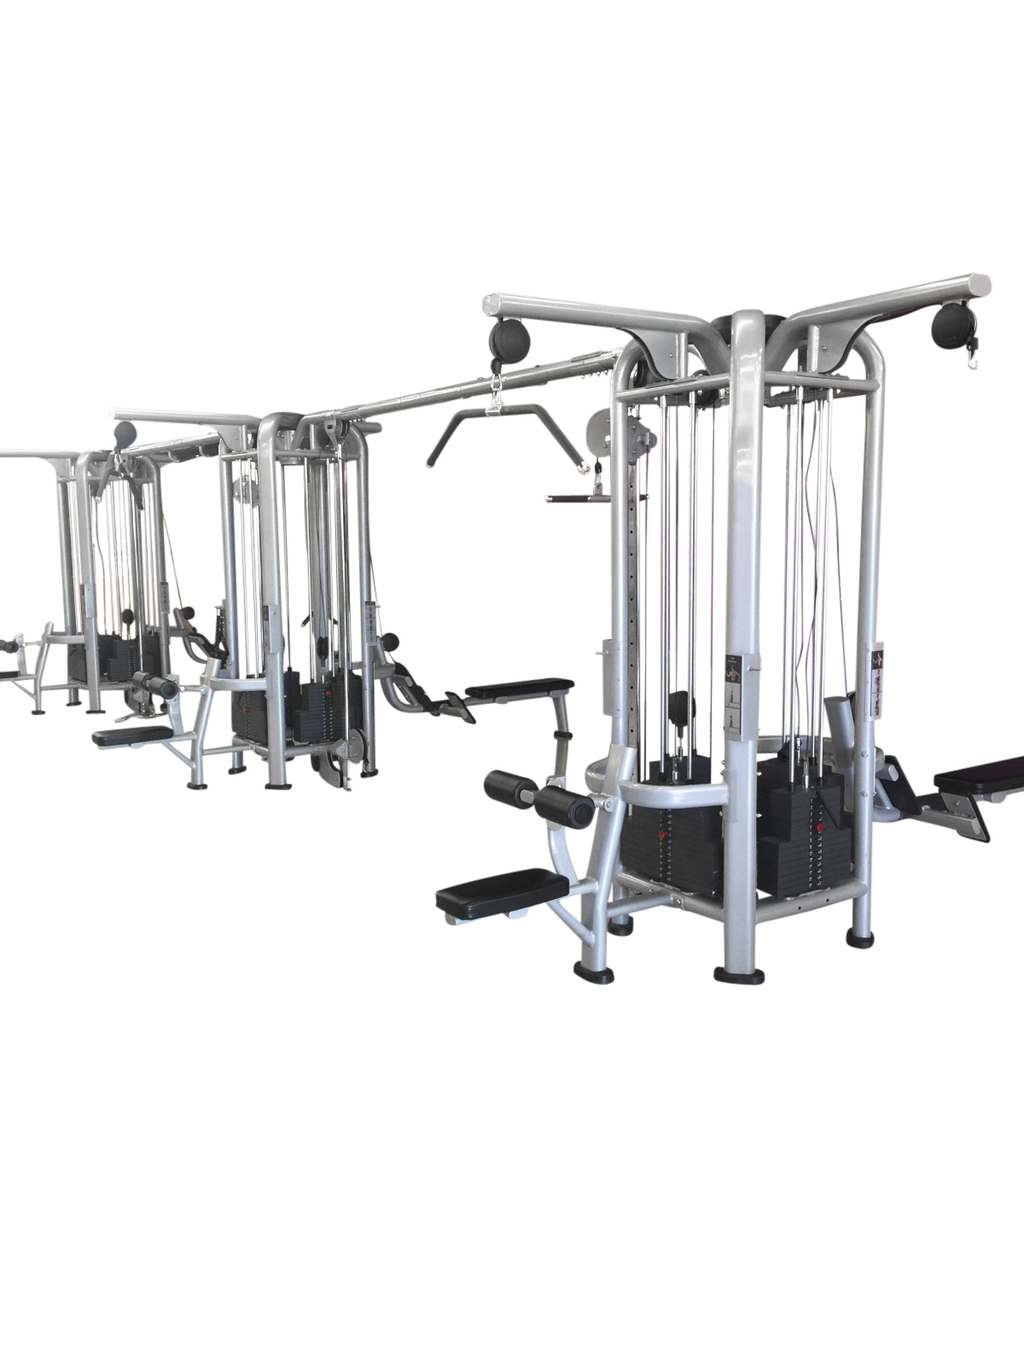 Deluxe 12 Stack Jungle Gym Version A - Muscle D